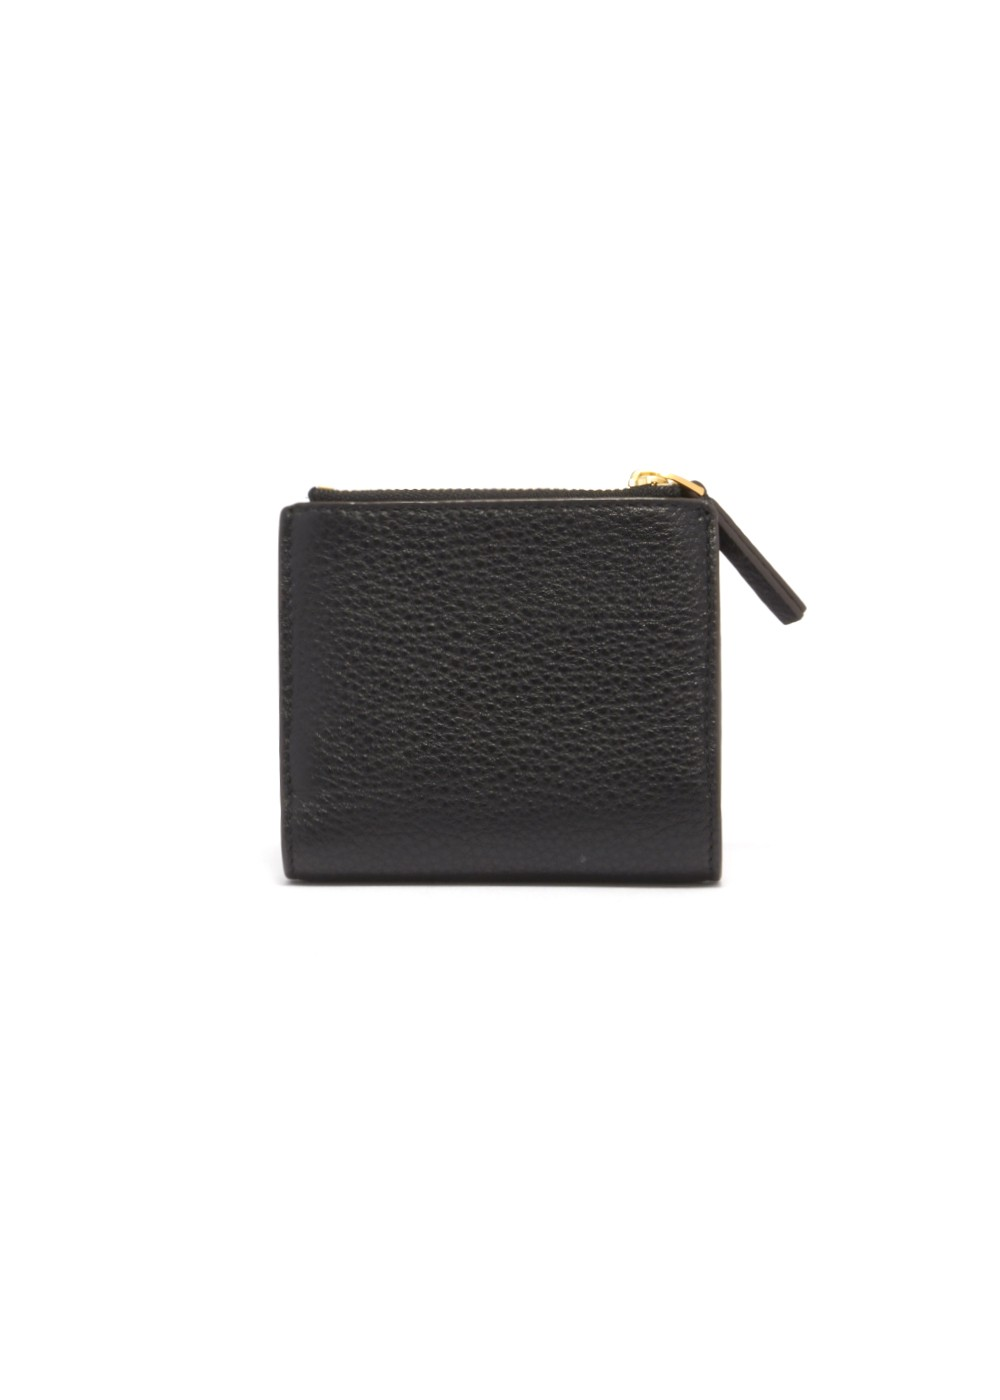 【最大48%OFF】MCGRAW MINI FOLDABLE WALLET|BLACK|レディース財布|Tory Burch